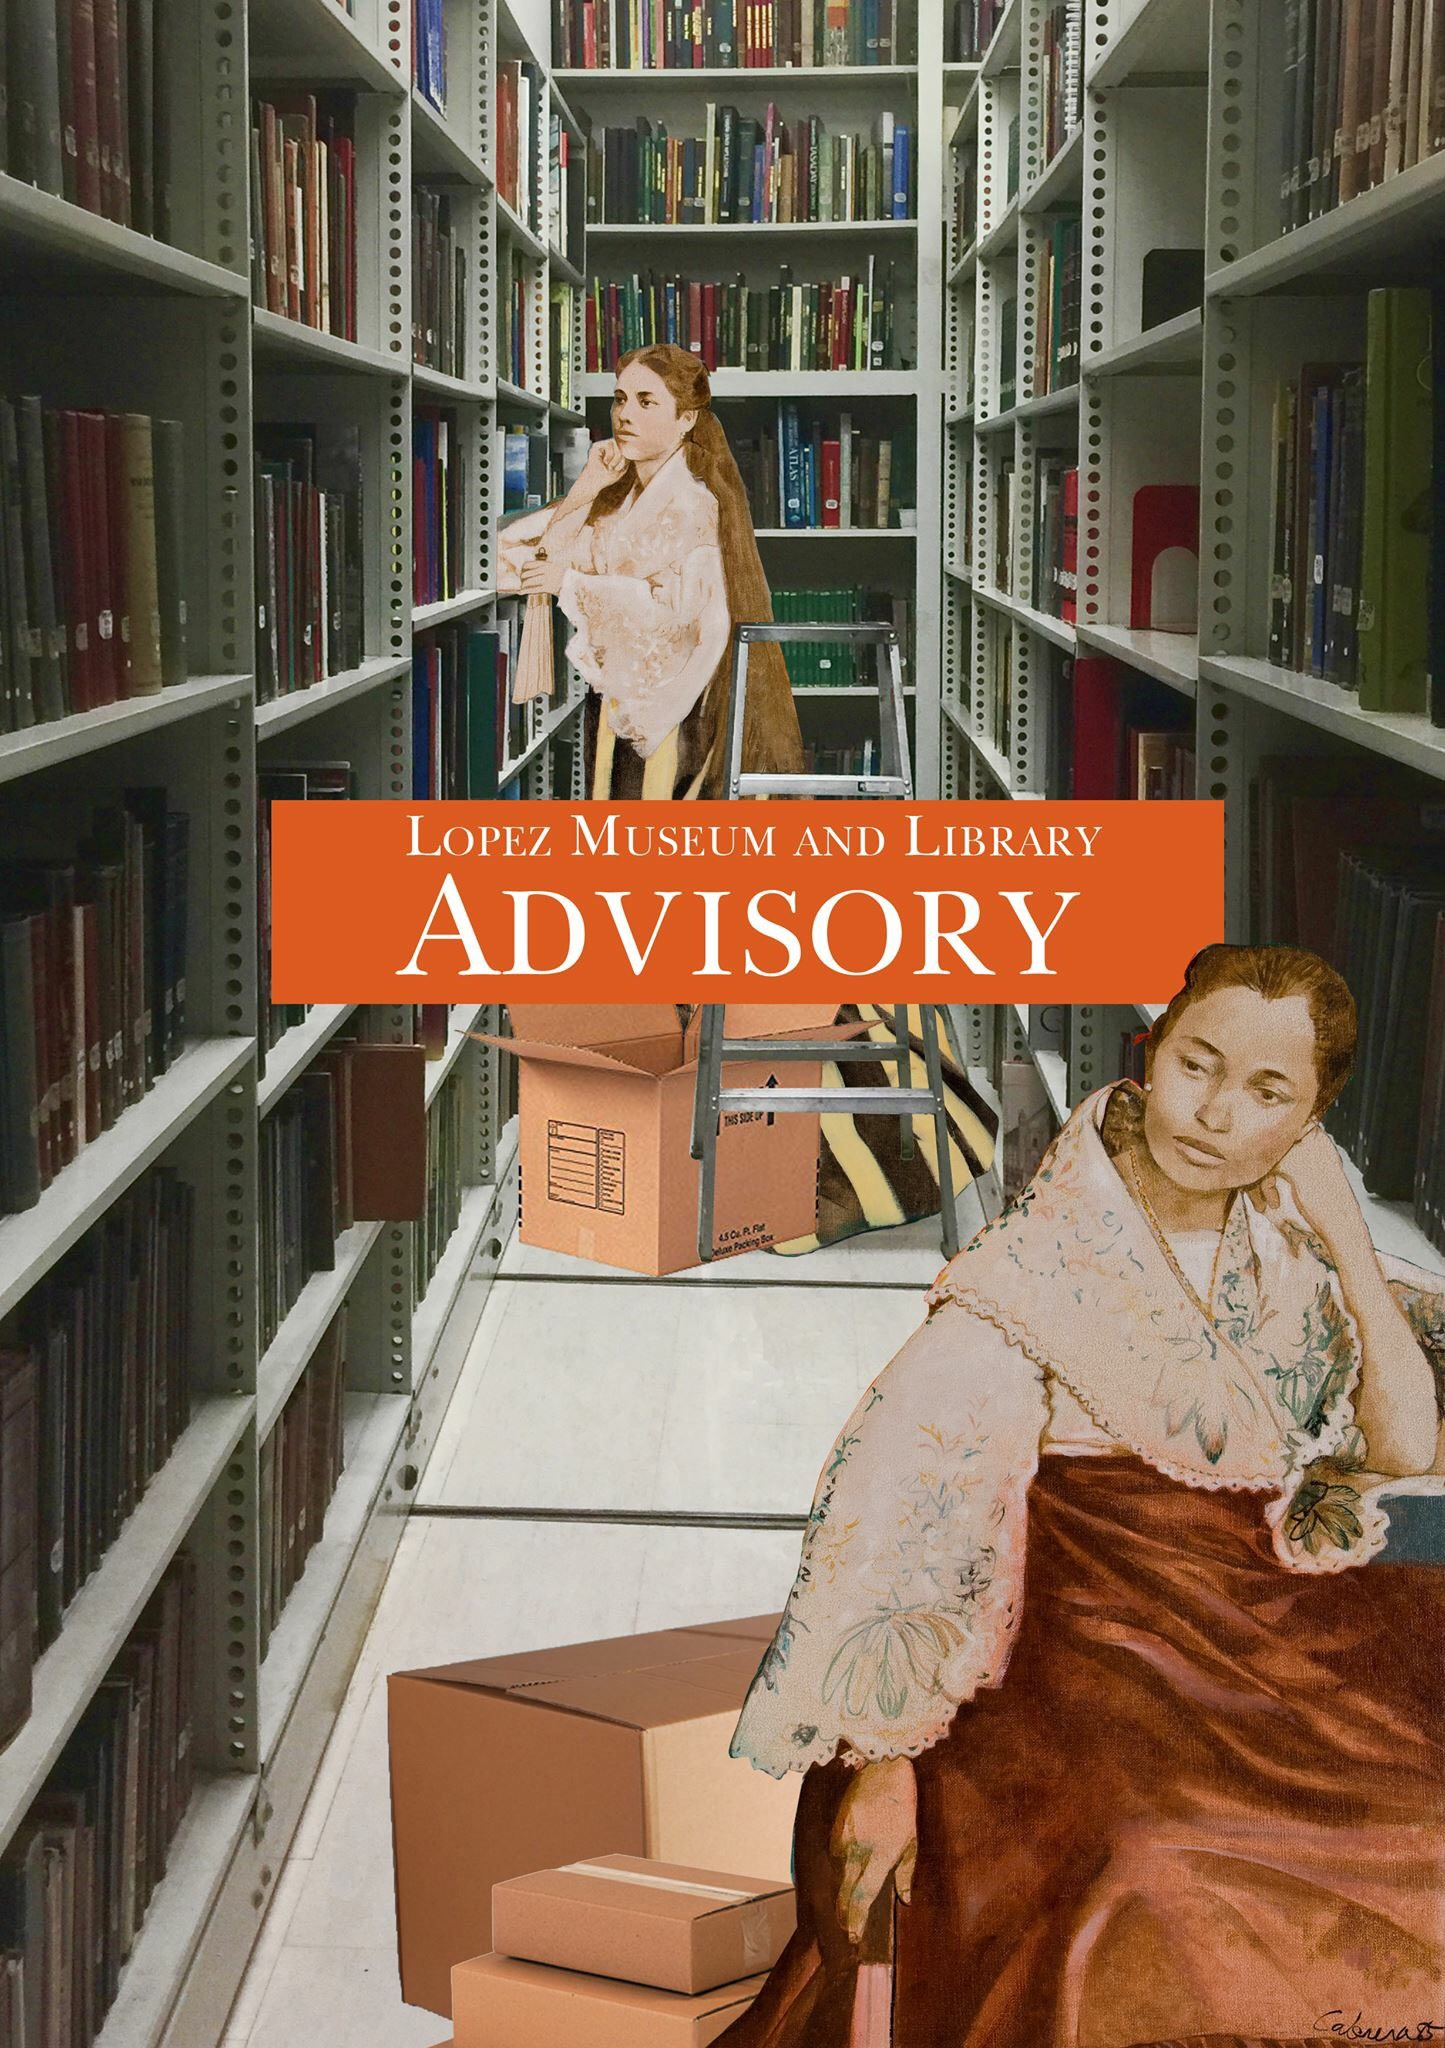 Lopez Museum and Libray Advisory